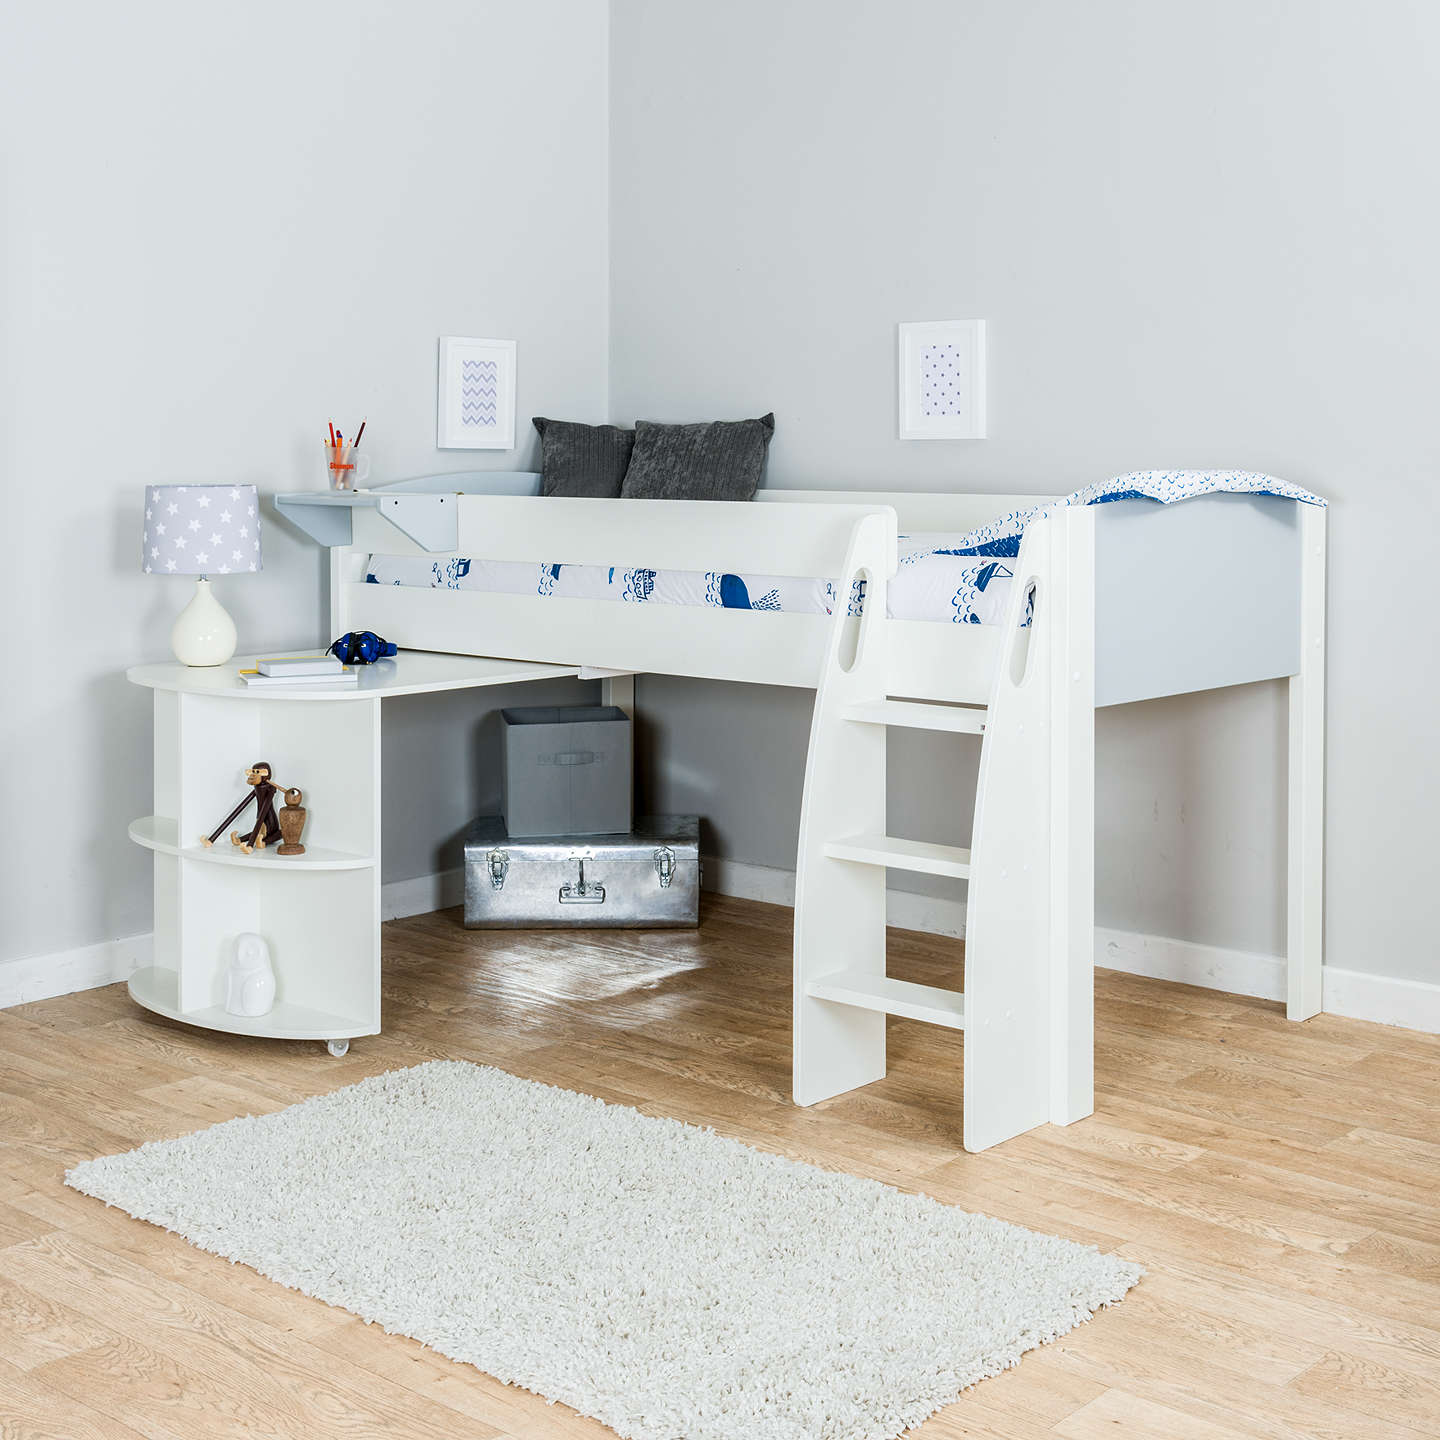 Stompa Uno S Plus Mid-Sleeper Bed Frame with Pull-Out Desk ...